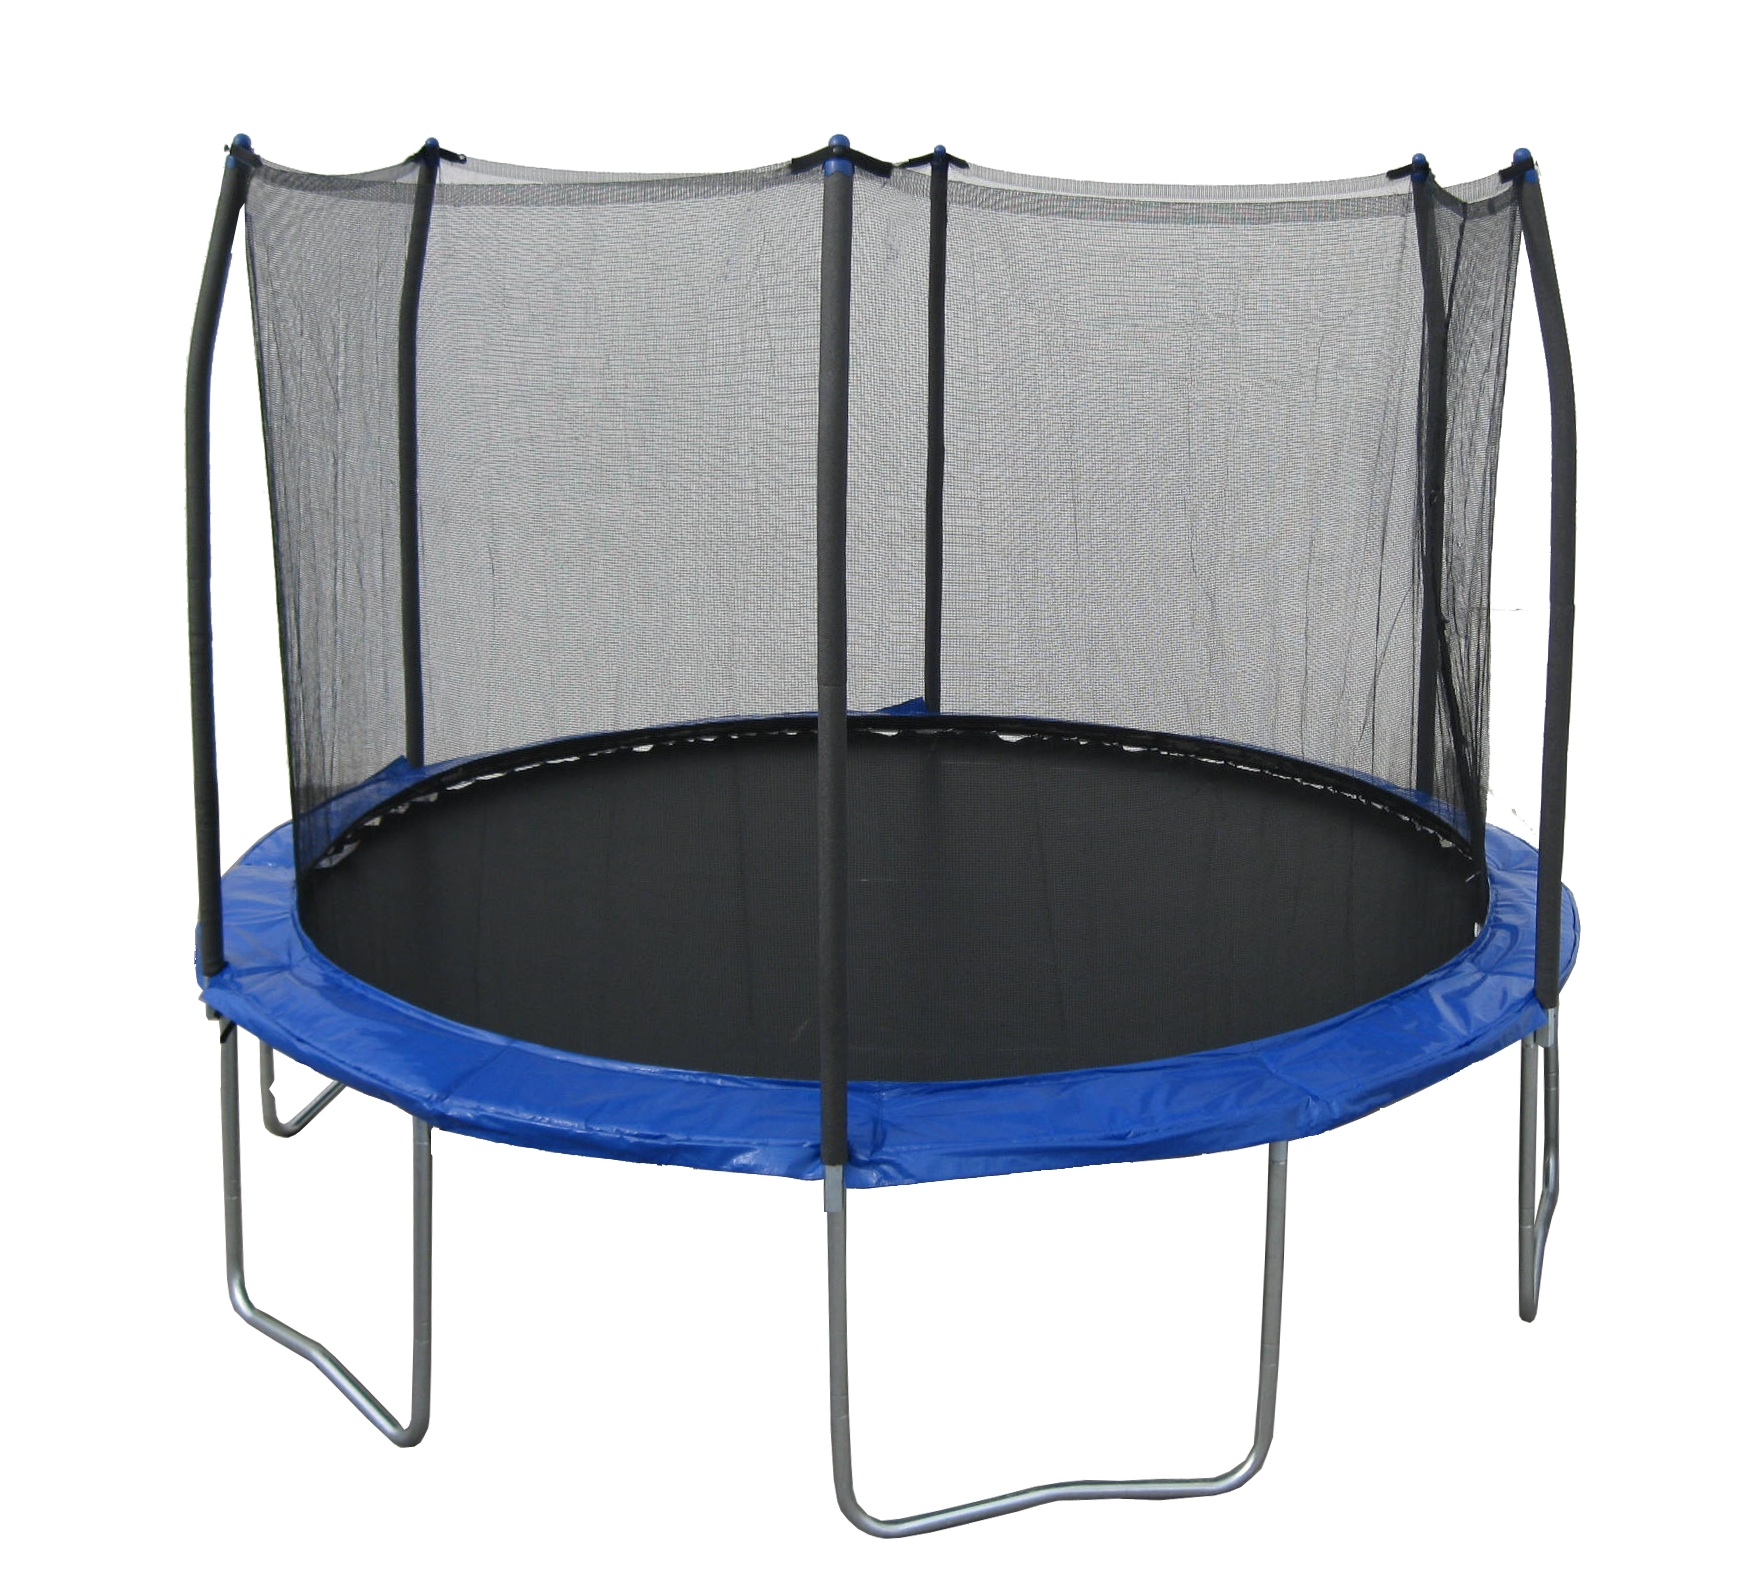 Blue Trampoline $180 Amazon Giveaway!